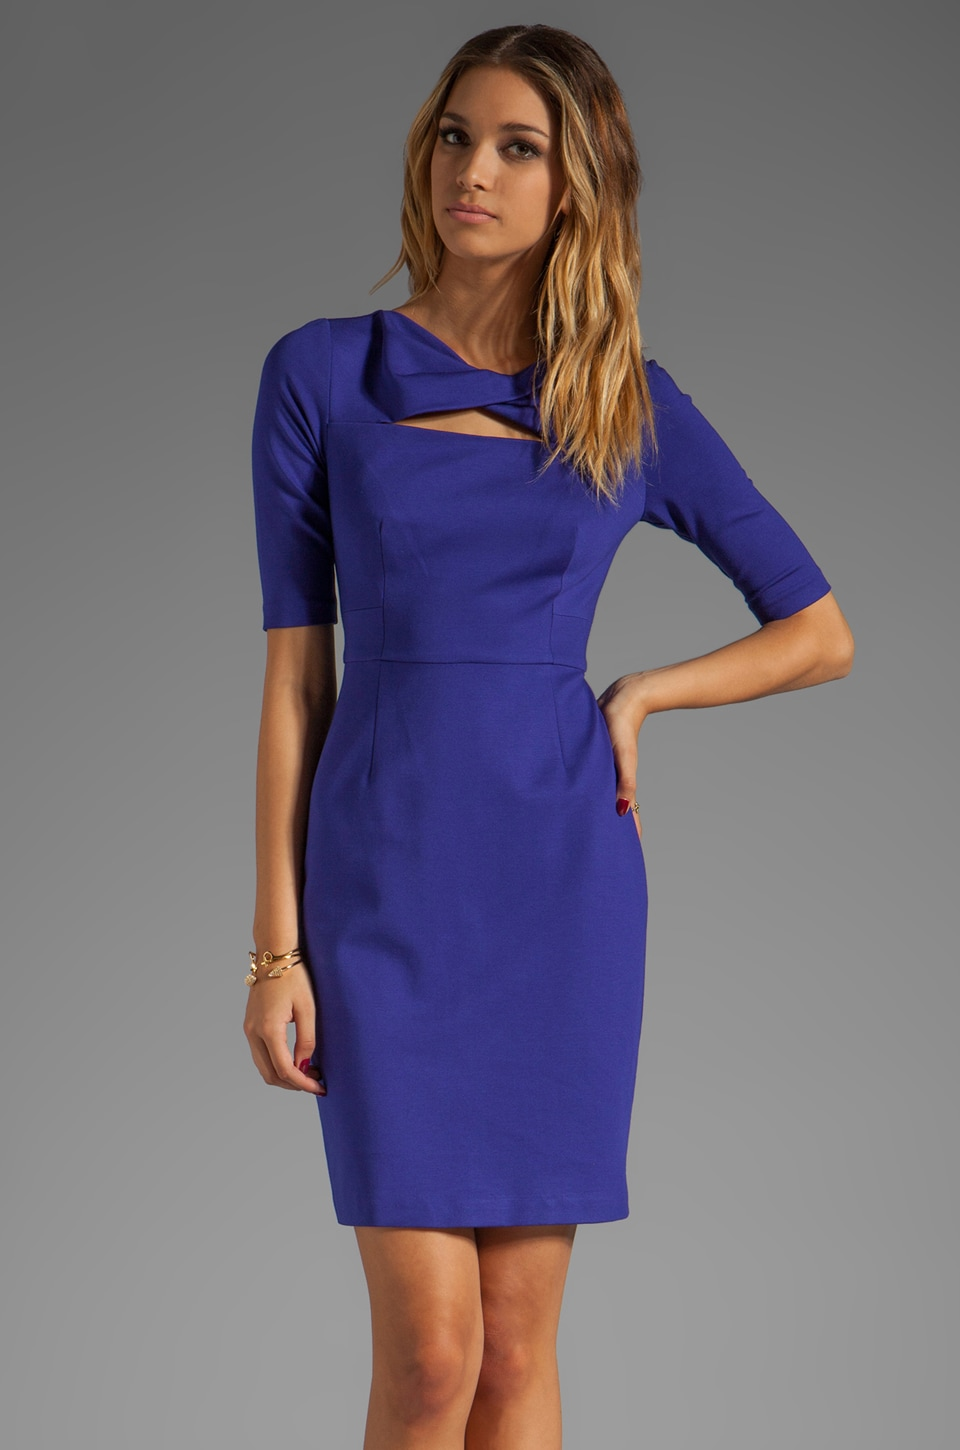 Trina Turk Romanova Dress in Q Blue